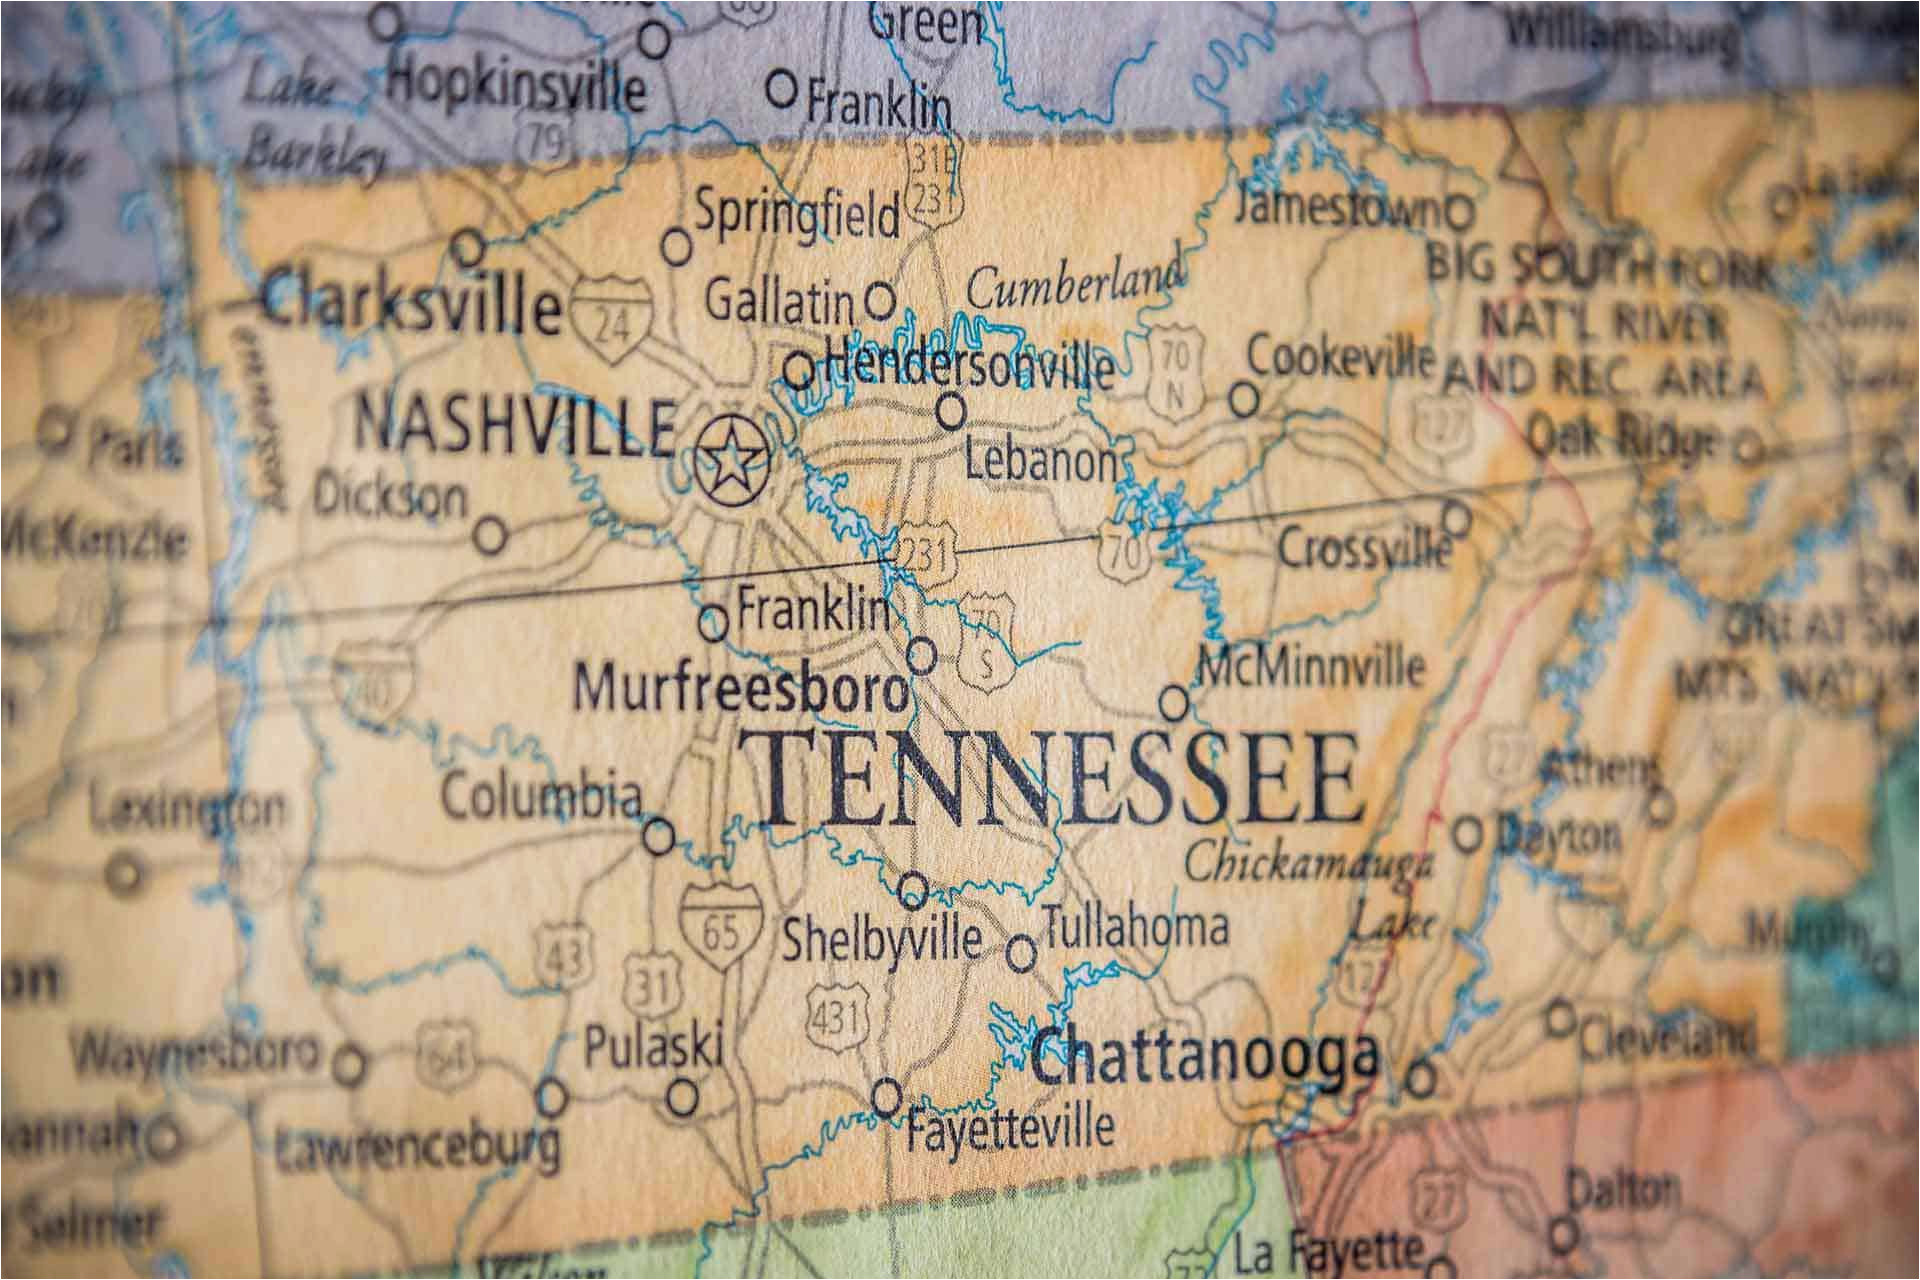 Nashville Tennessee Time Zone Map Old Historical City County and ...